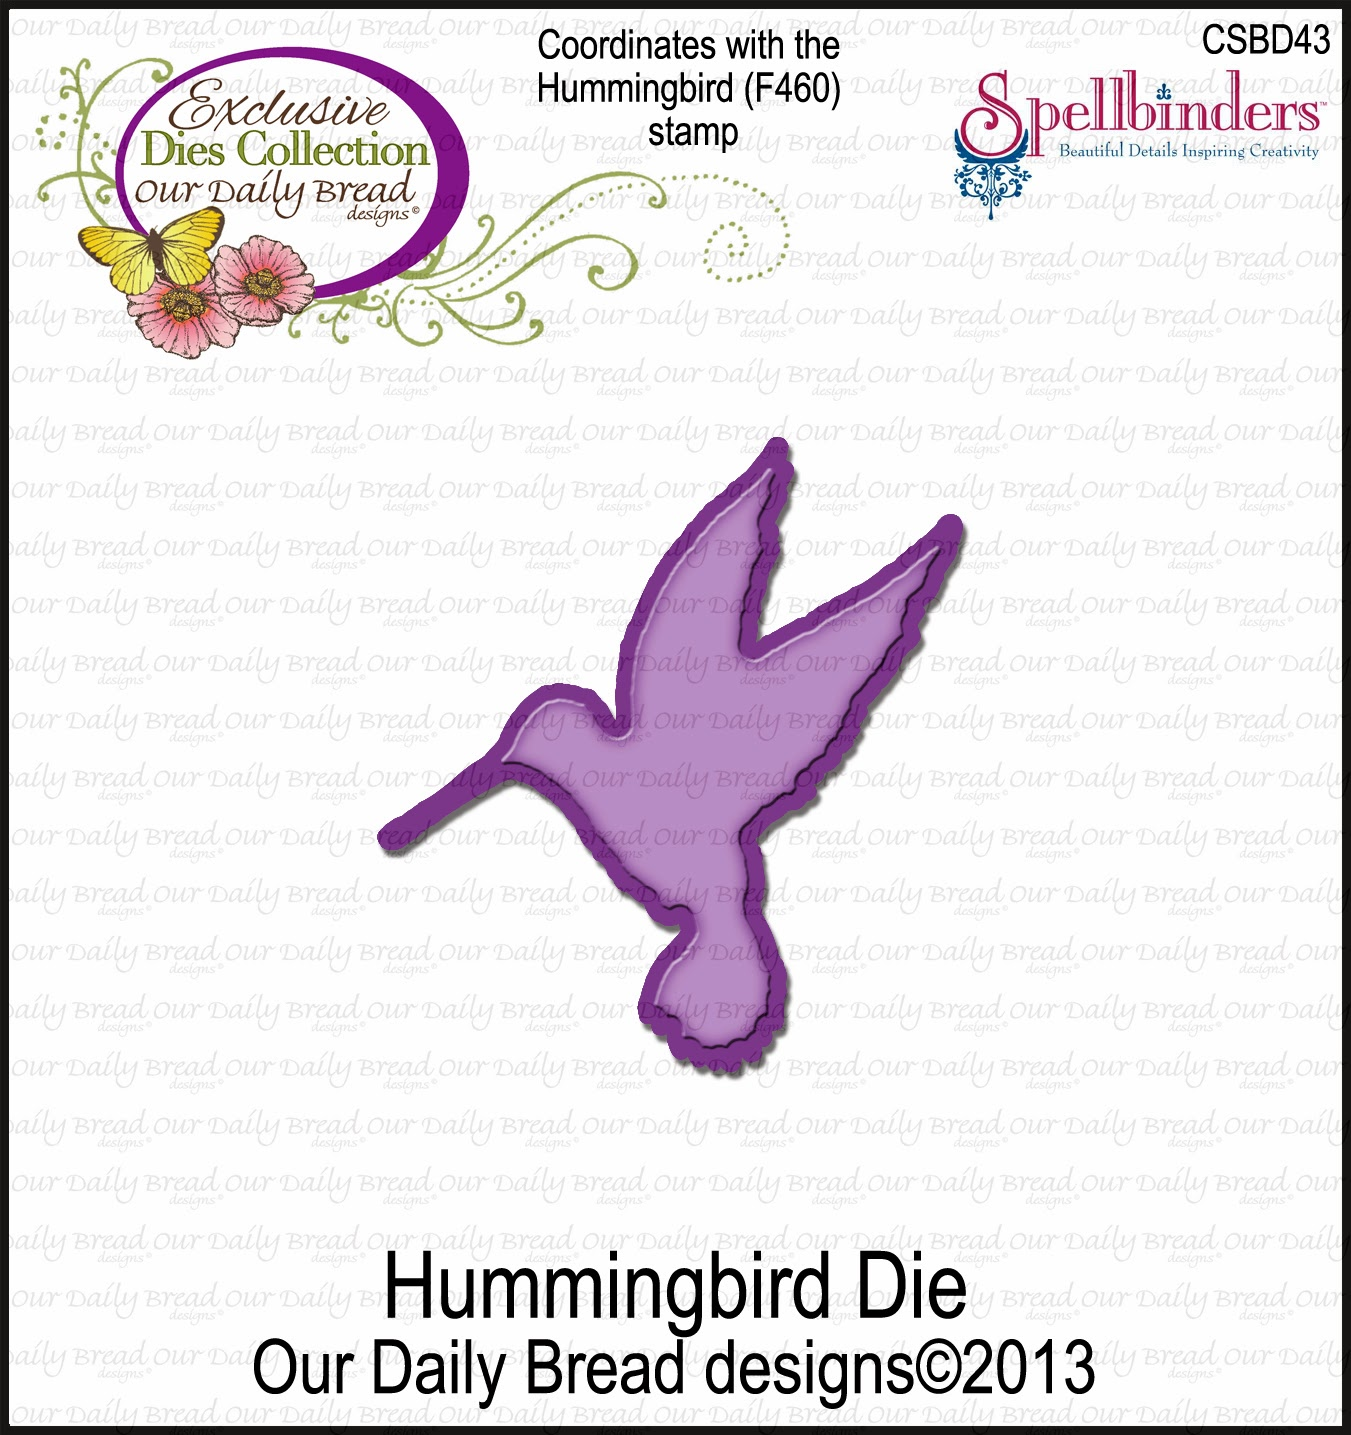 http://www.ourdailybreaddesigns.com/index.php/csbd43-hummingbird-dies.html